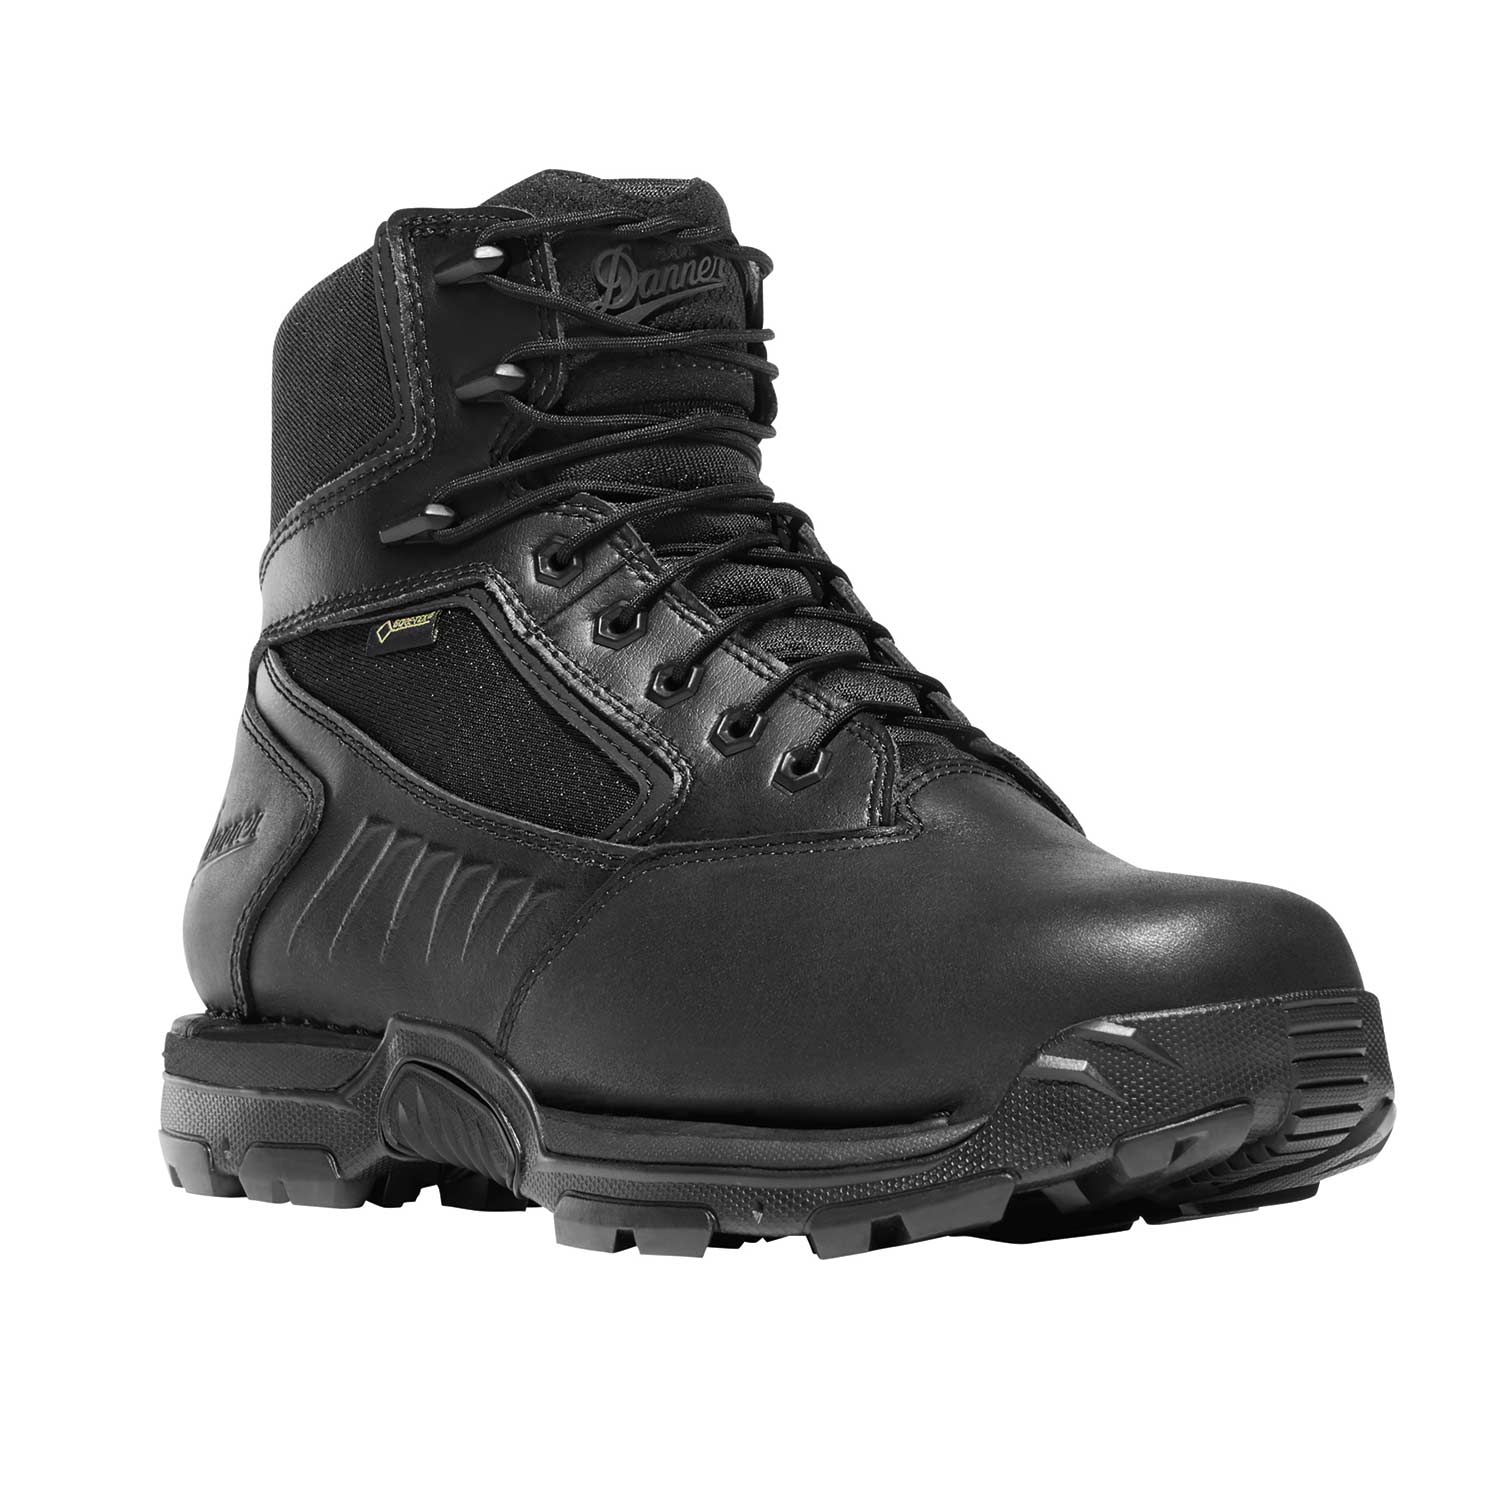 "Danner Striker Bolt 6"" Waterproof Boot"